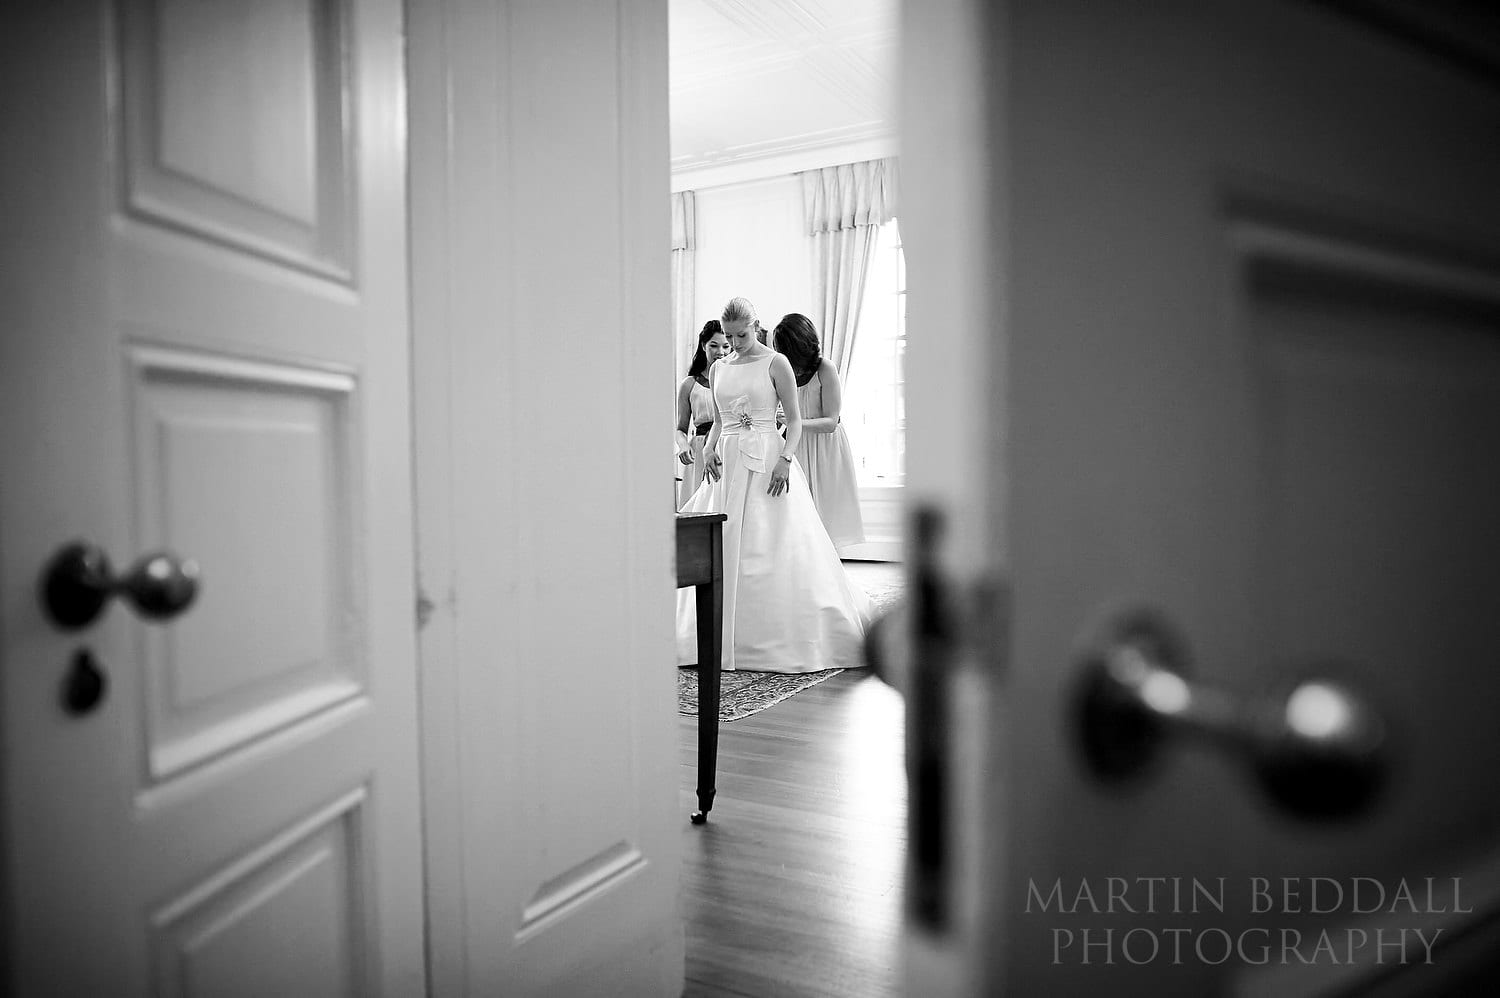 Wedding photography in 2011 at The Temple